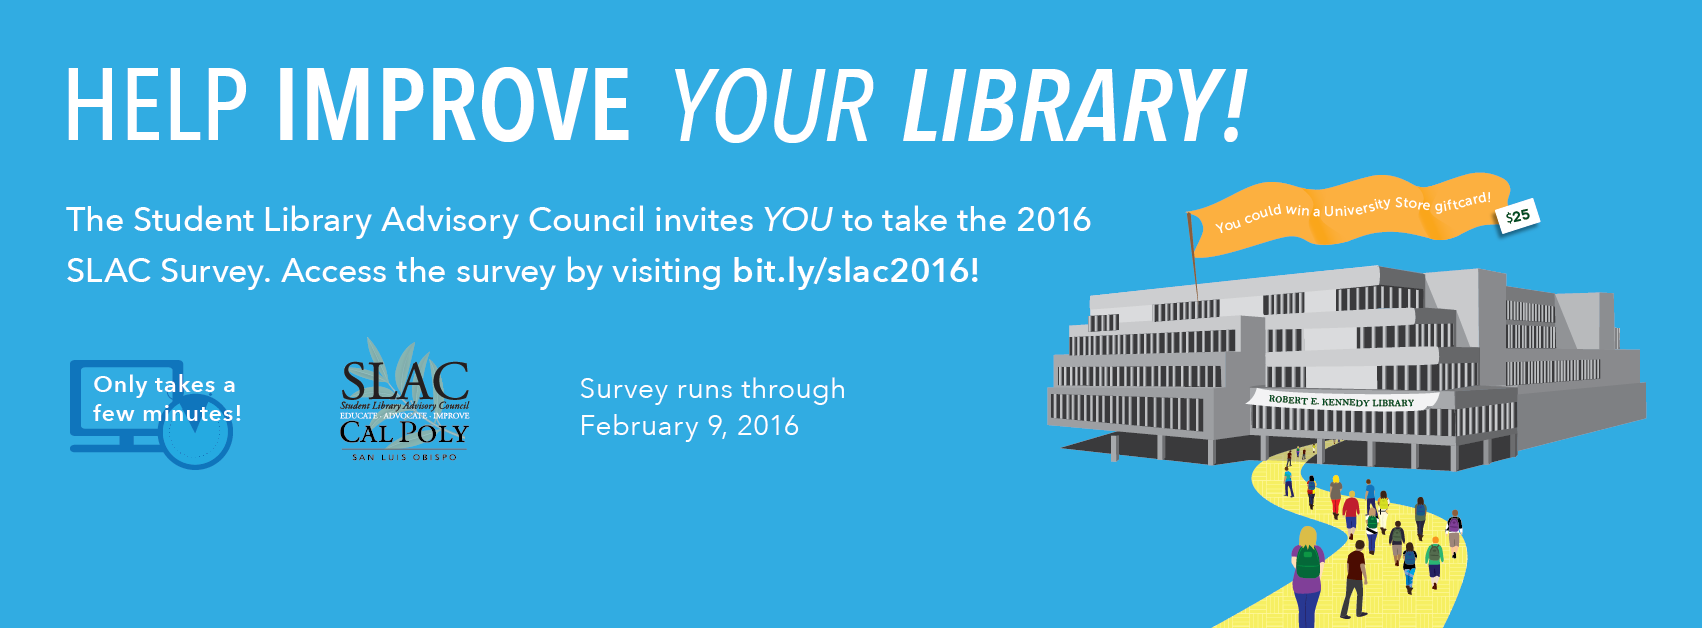 SLAC Survey Banner 2016